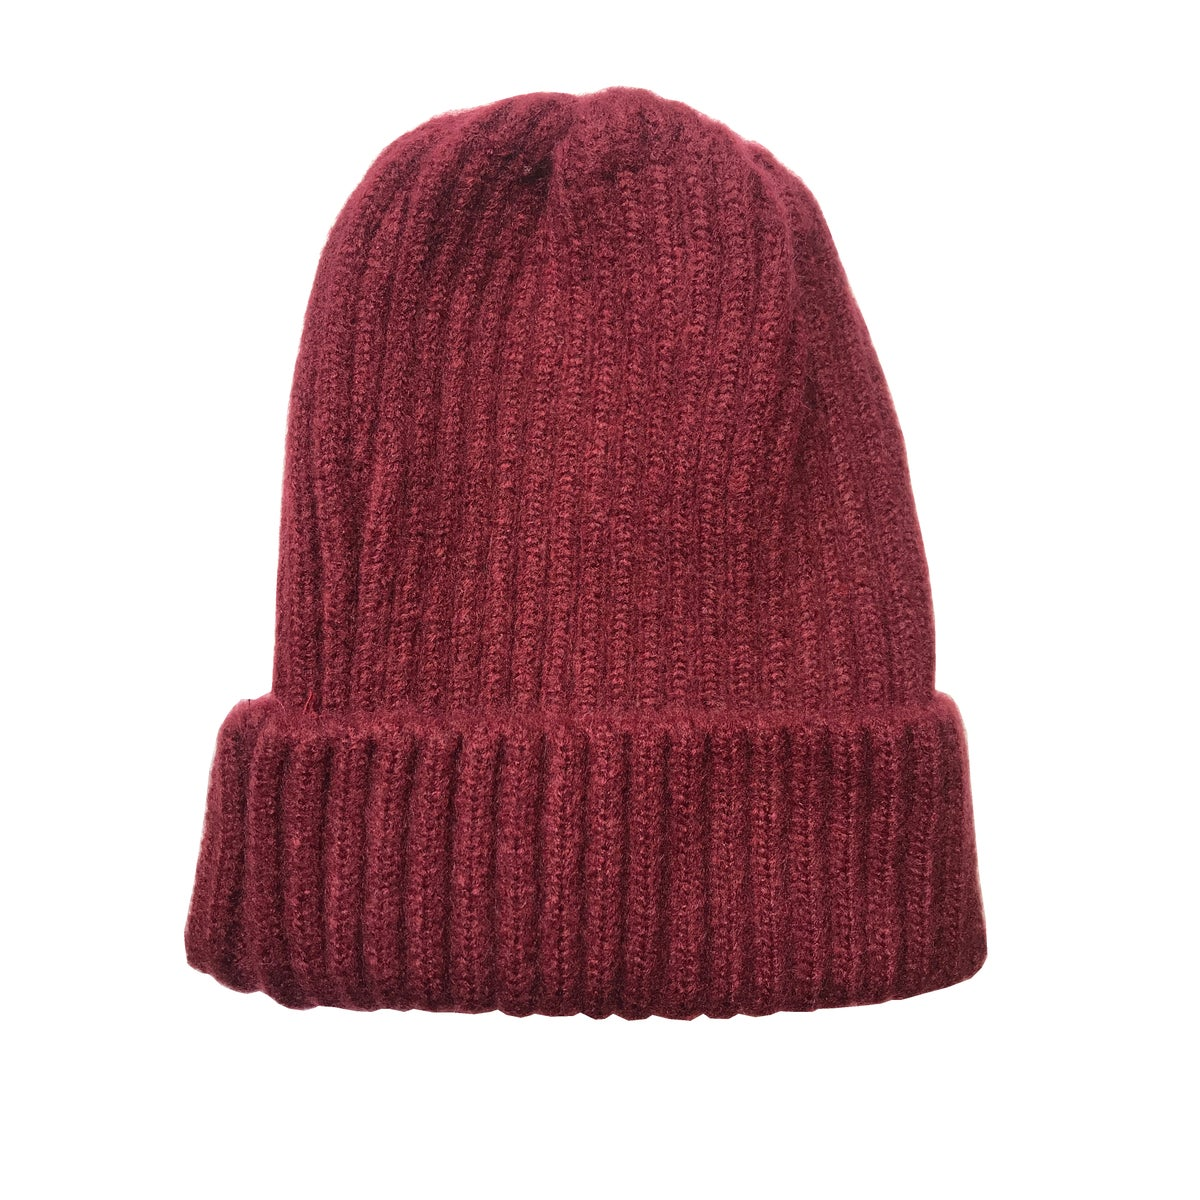 Image of Soft Fisherman's Beanie/ Watch Cap. Burgundy.